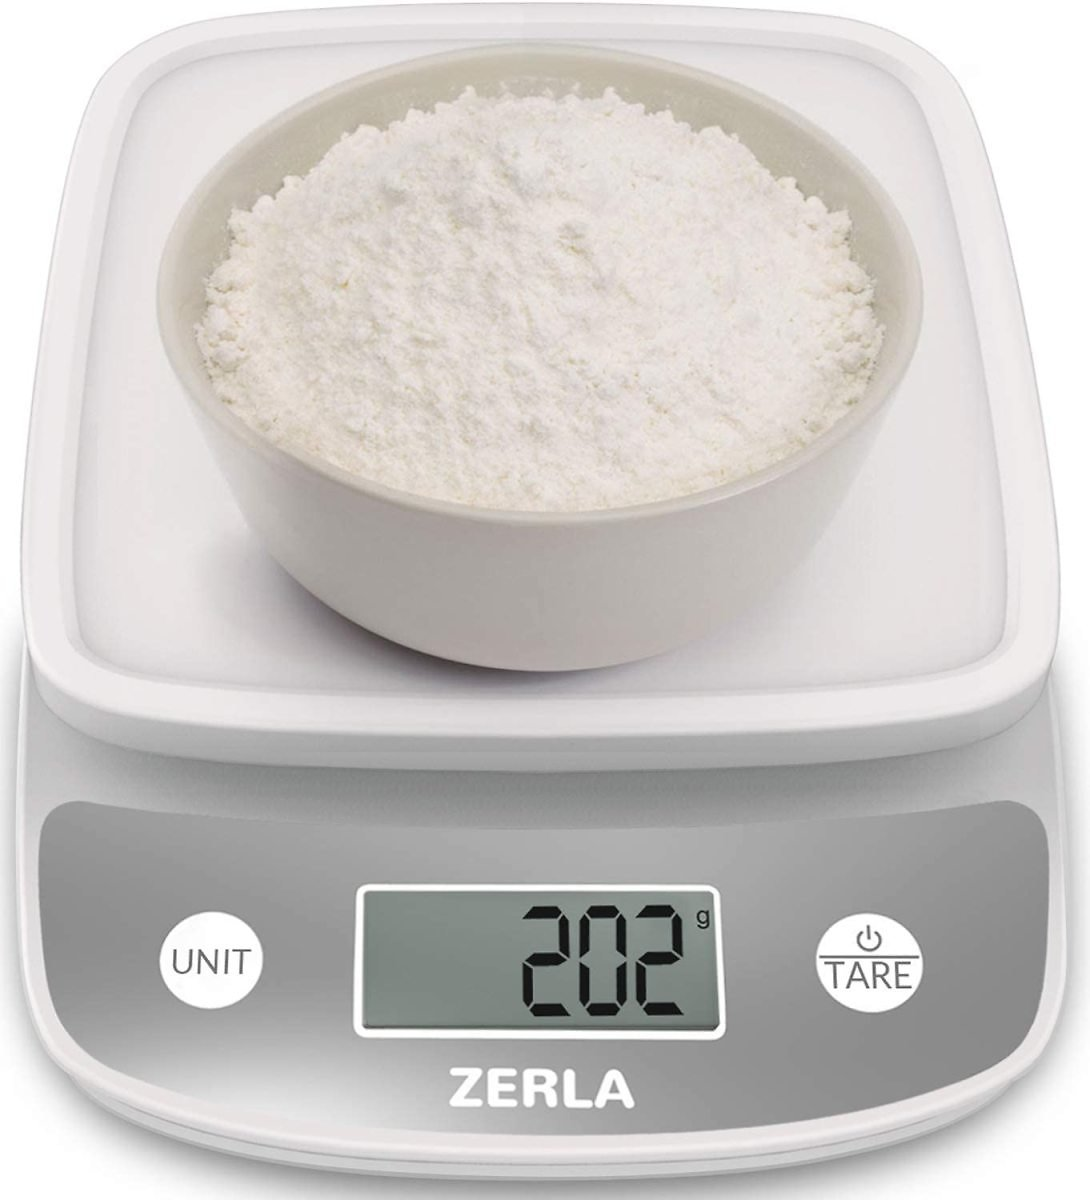 Digital Kitchen Scale By ZERLA, Multifunction Food Scale with Range From 0.04oz to 11lbs, White: Kitchen & Dining